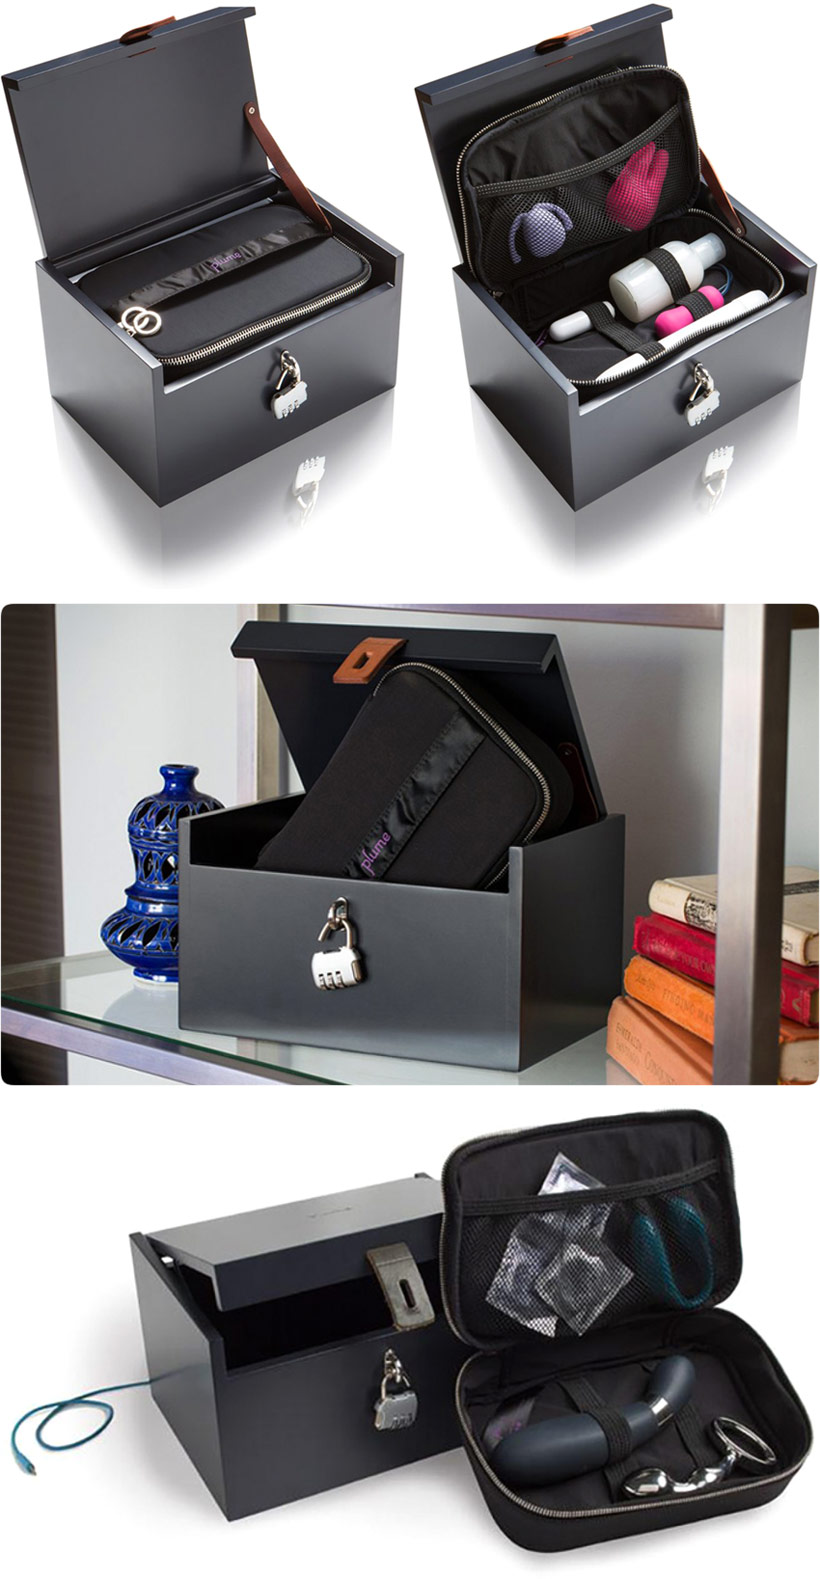 Moi Box Deluxe storage case for sex toys - Black